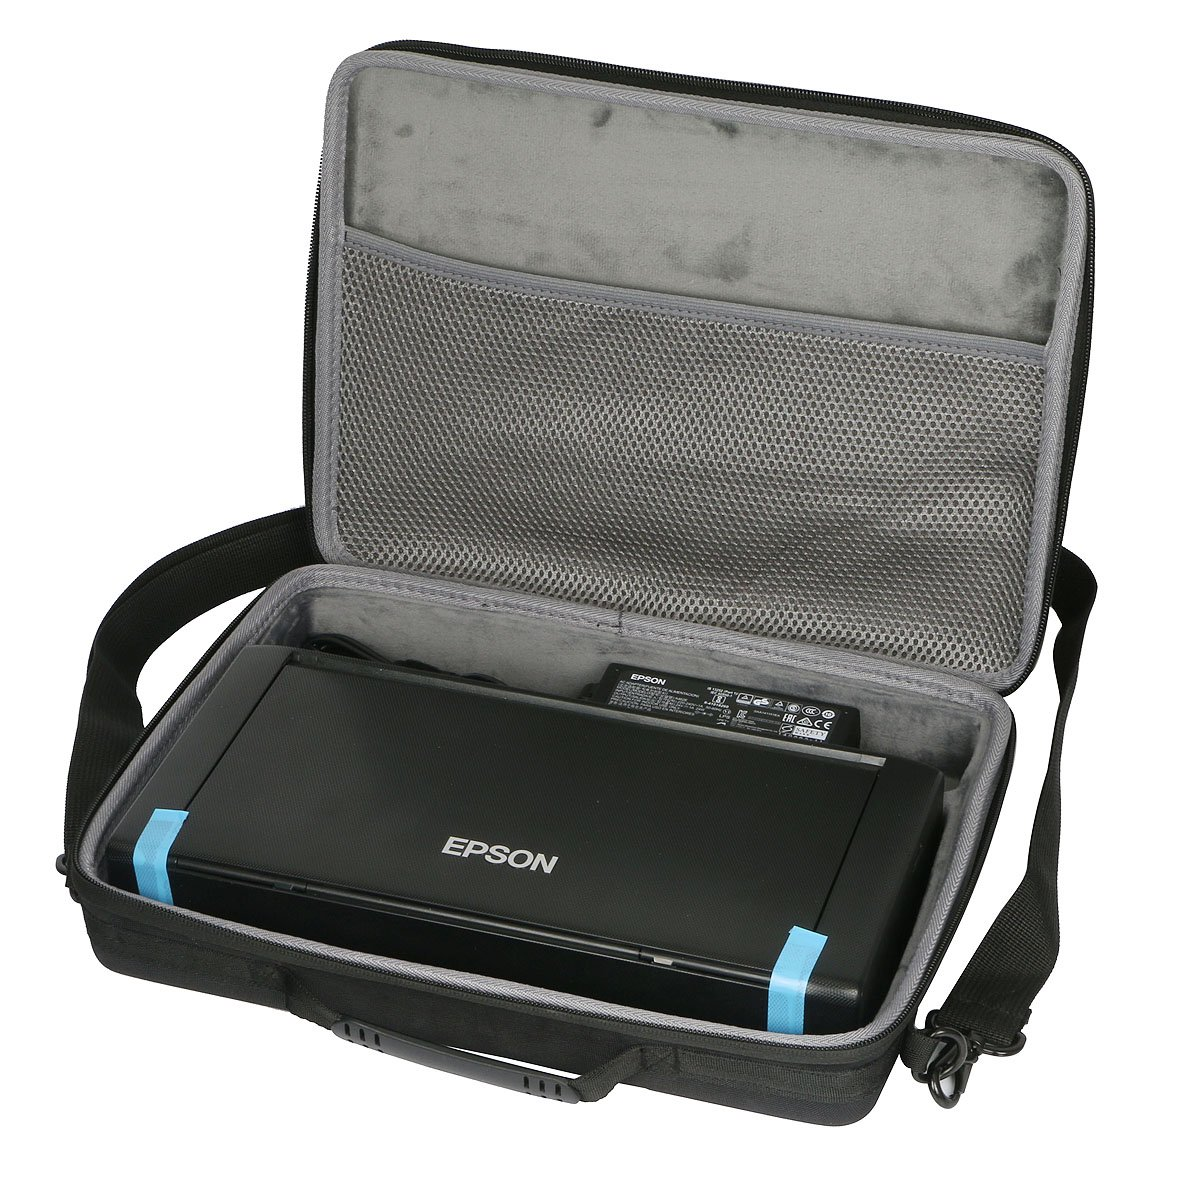 Co2Crea Hard Travel Case Bag for Epson WorkForce WF-100 Wireless Mobile Printer